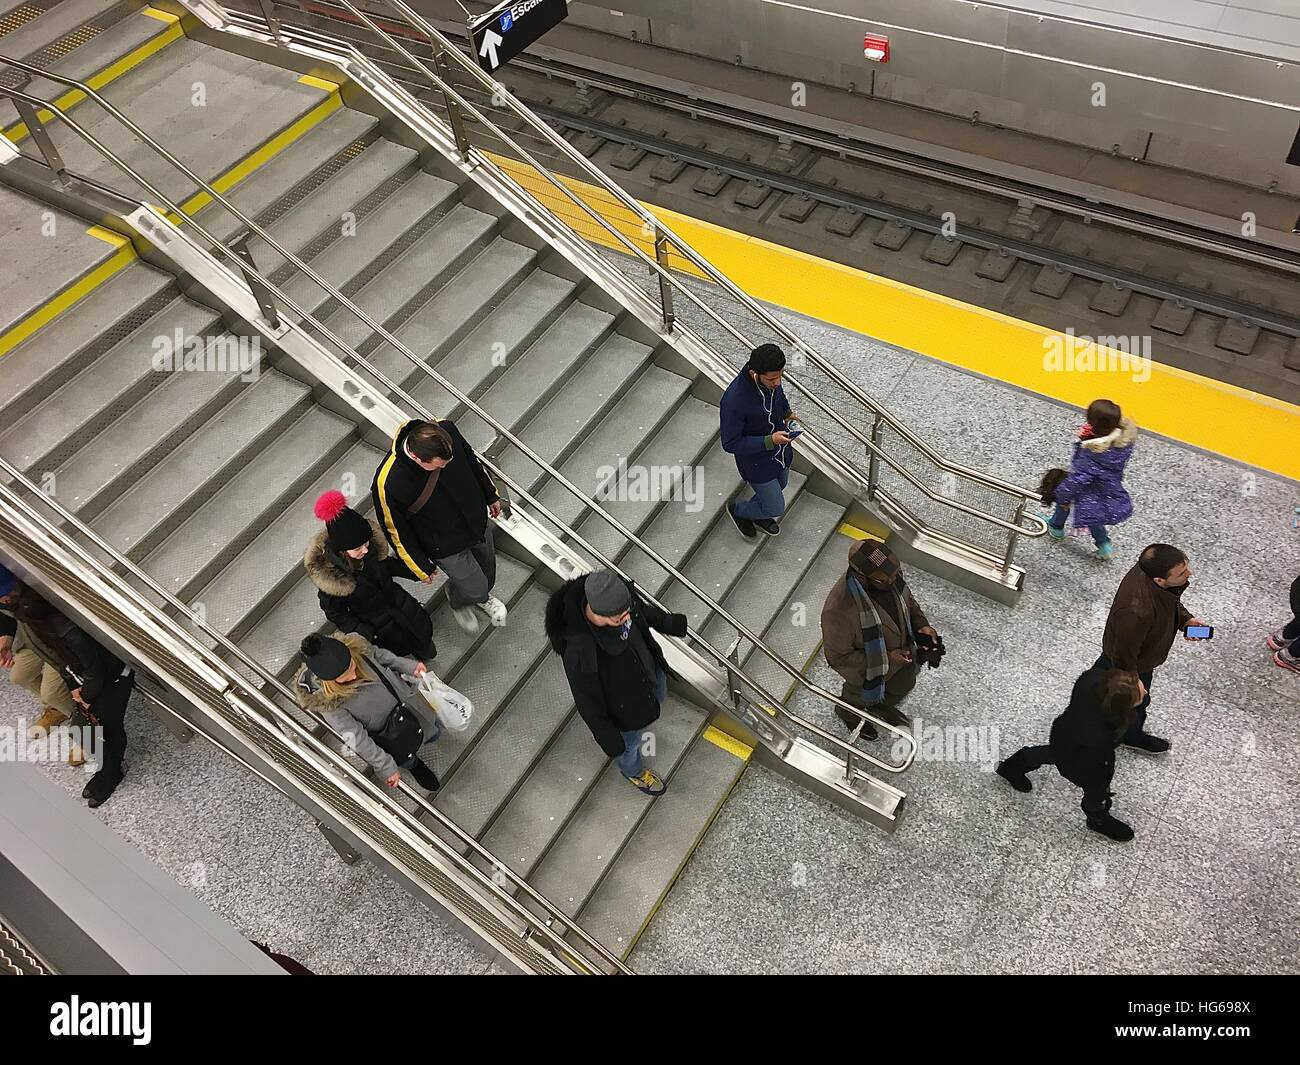 72nd Street And 2nd Avenue Subway Station On The Grand Opening Of Second Line In New York January 1 2017